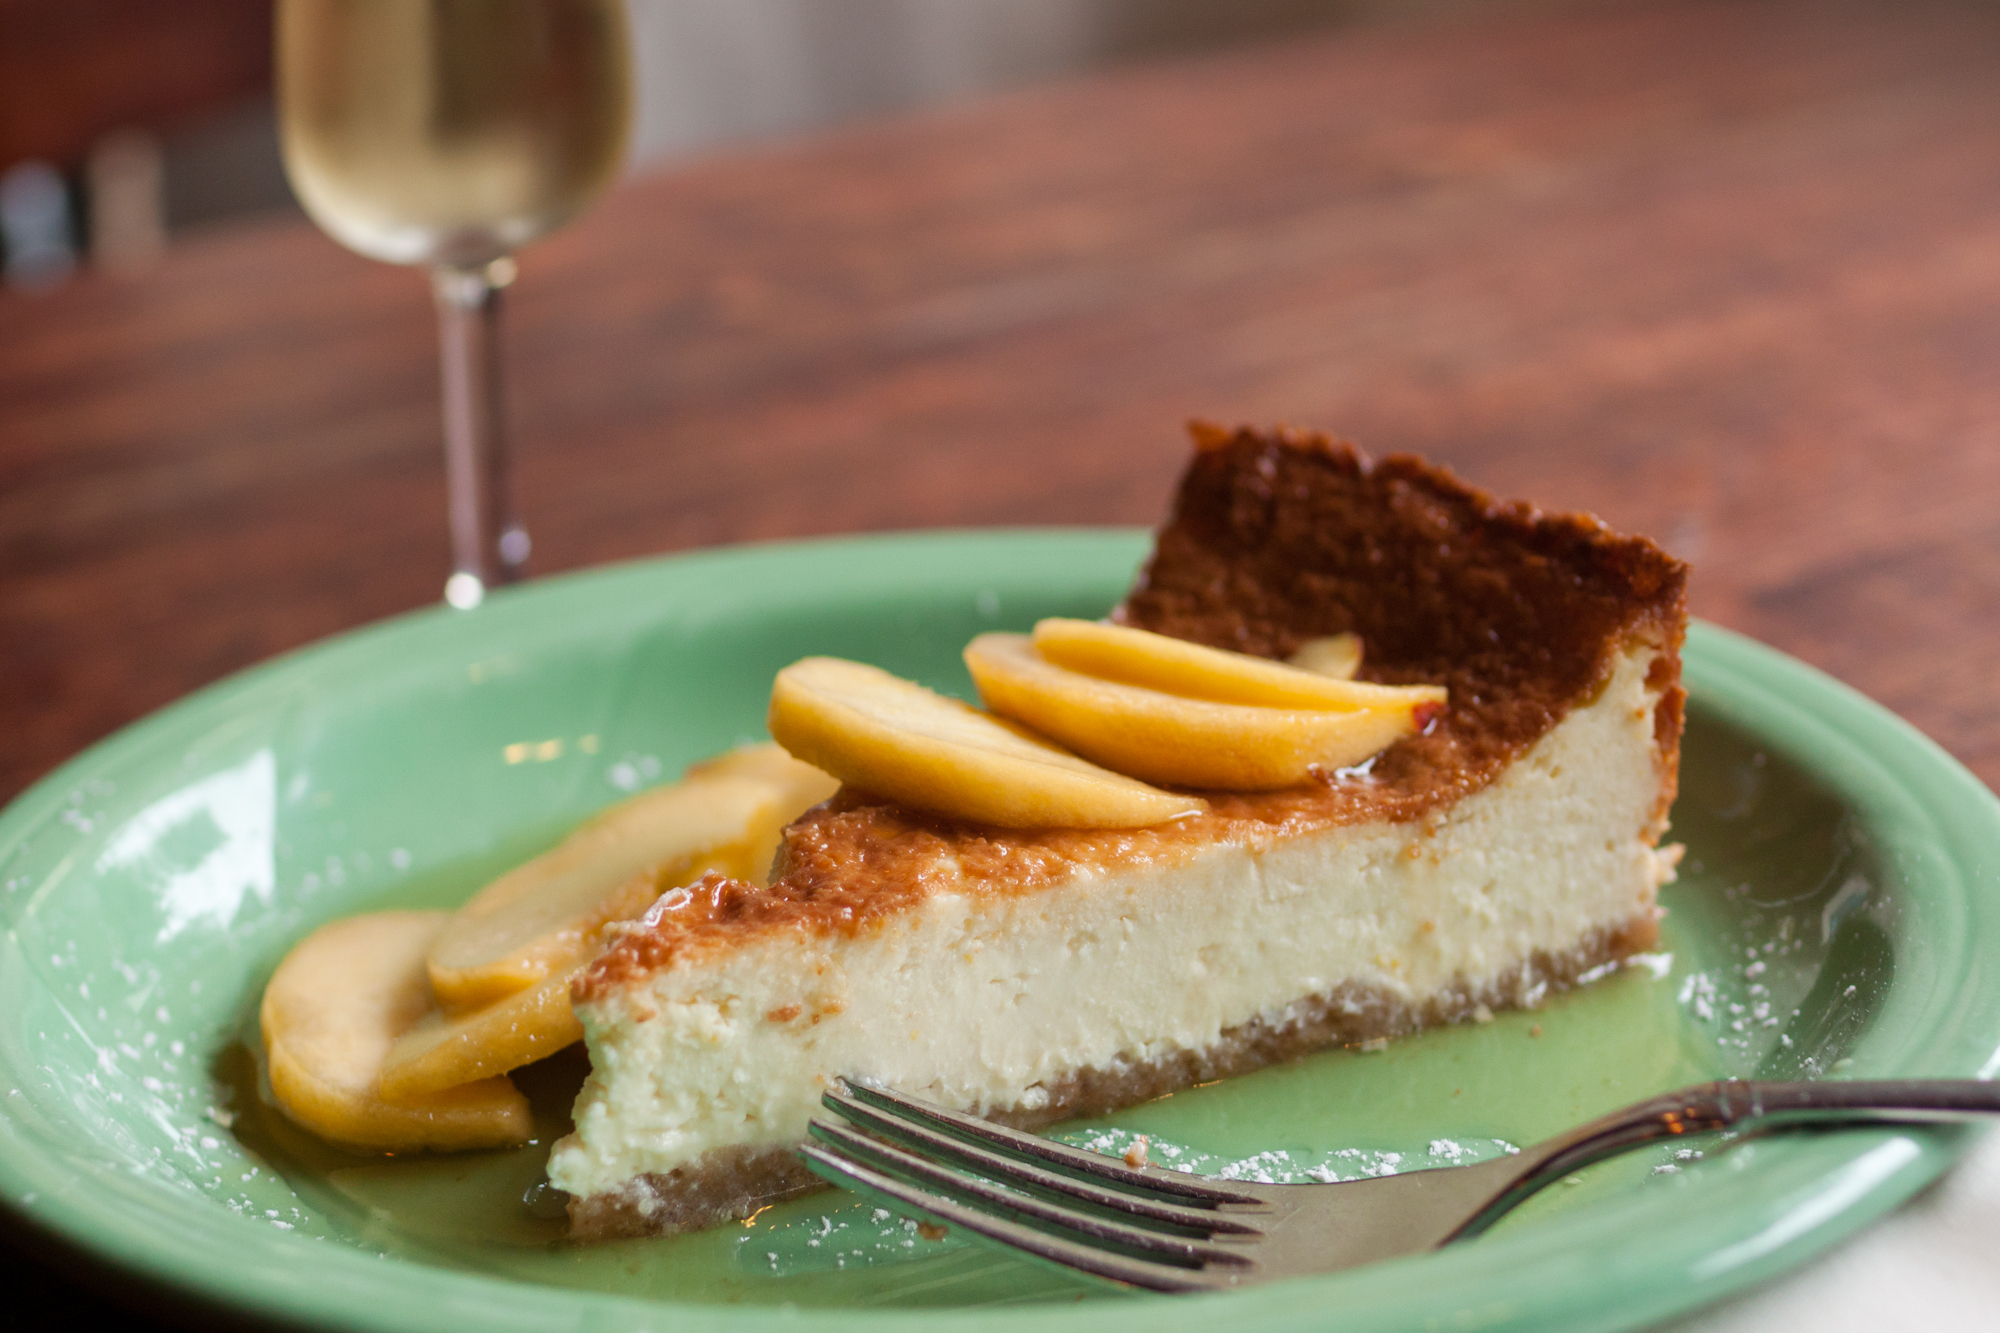 Ricotta and Caprino cheese cake with sliced peaches in honey